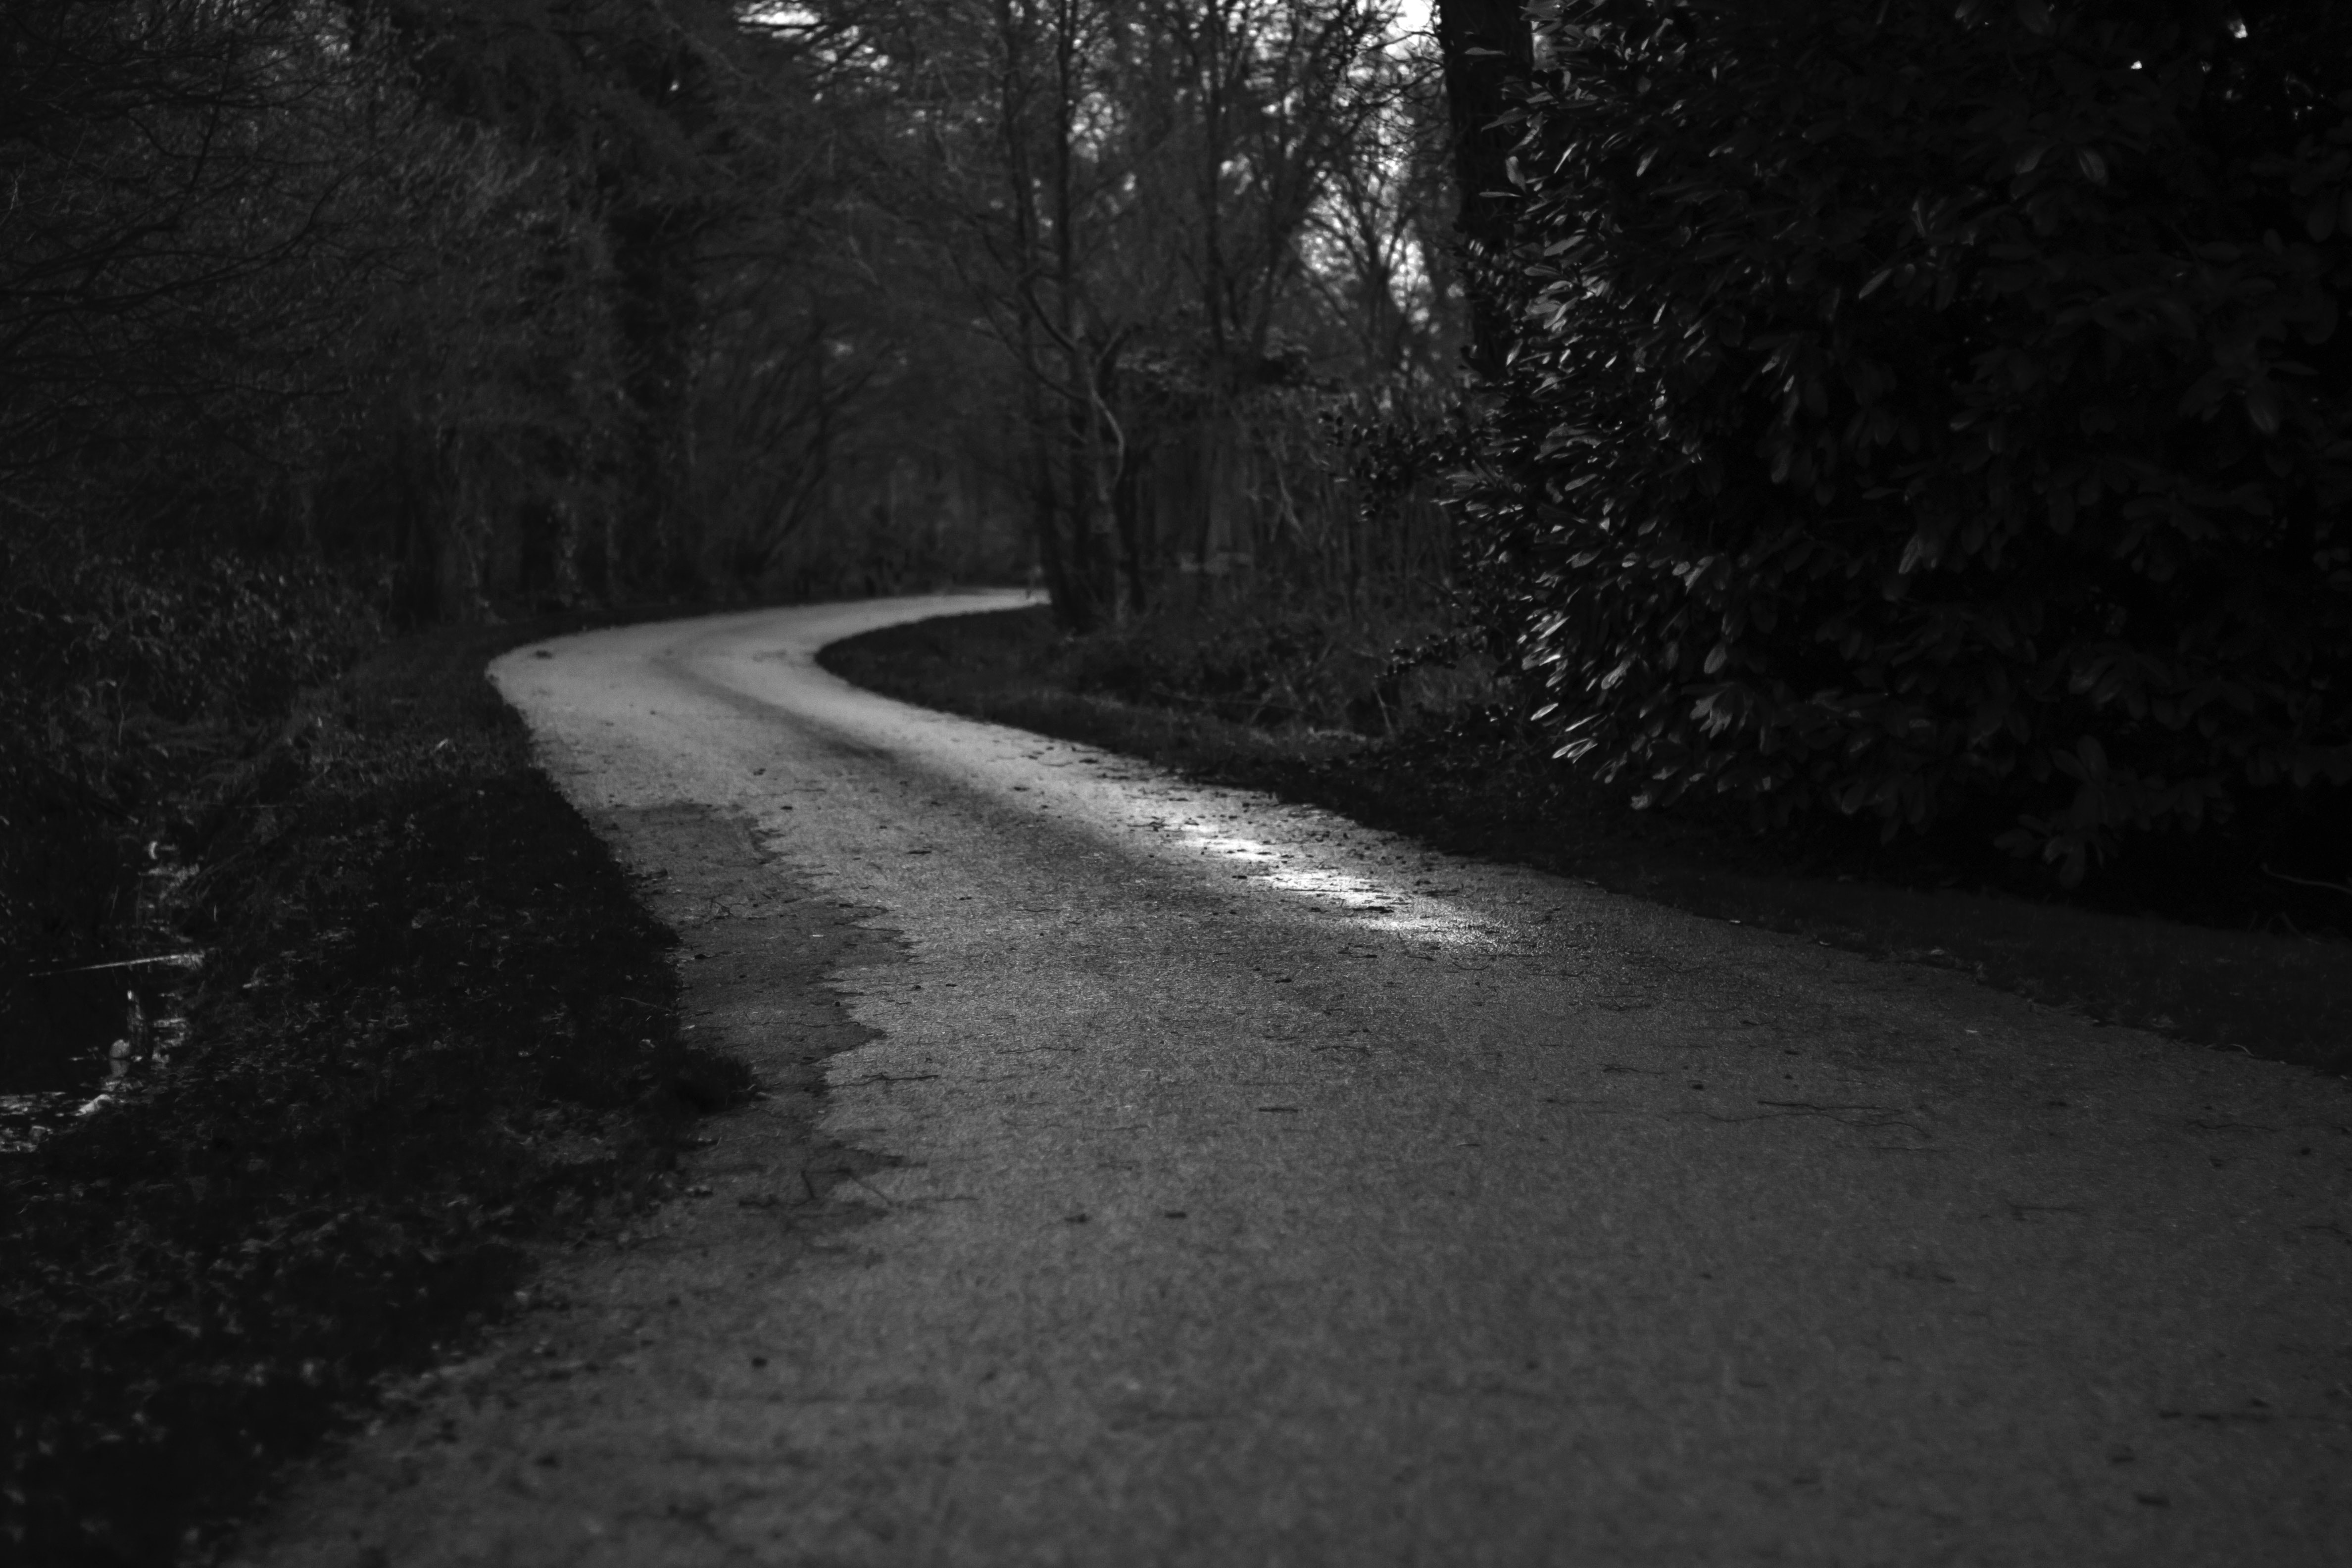 grayscale photo of road in between trees at daytime